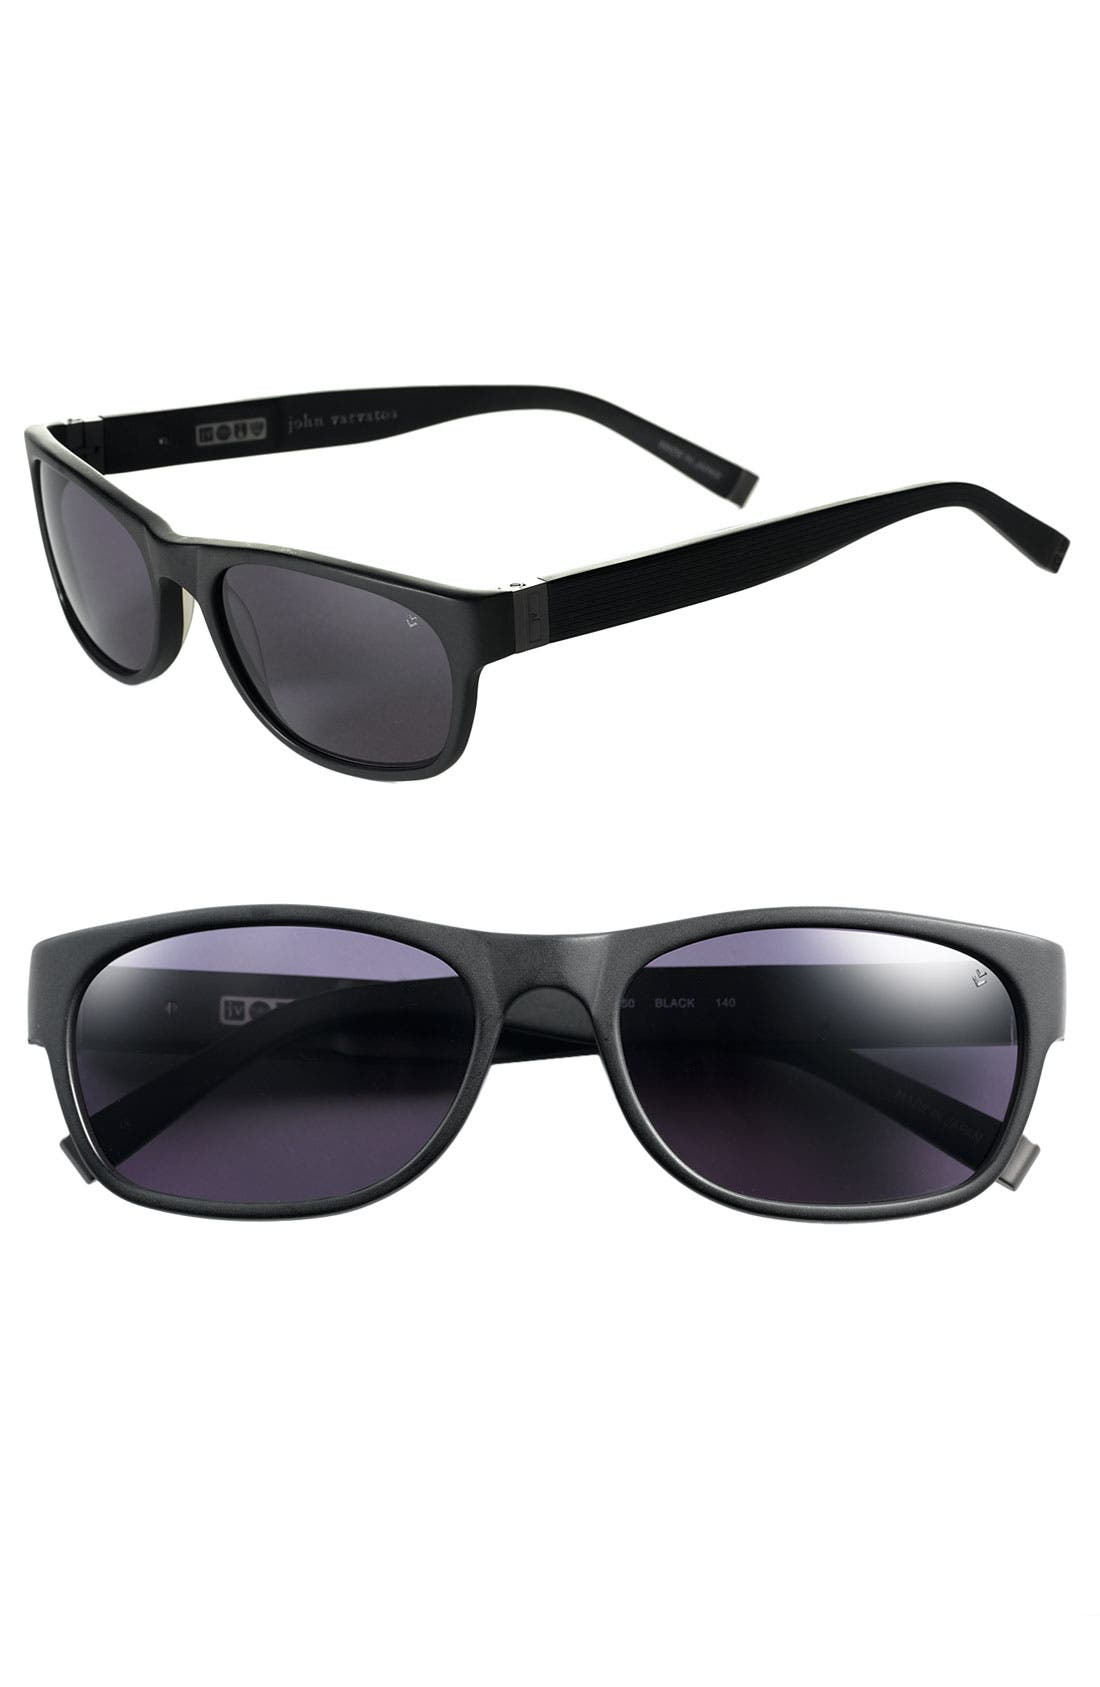 Alternate Image 1 Selected - John Varvatos Collection 'Swirl' Plastic Sunglasses